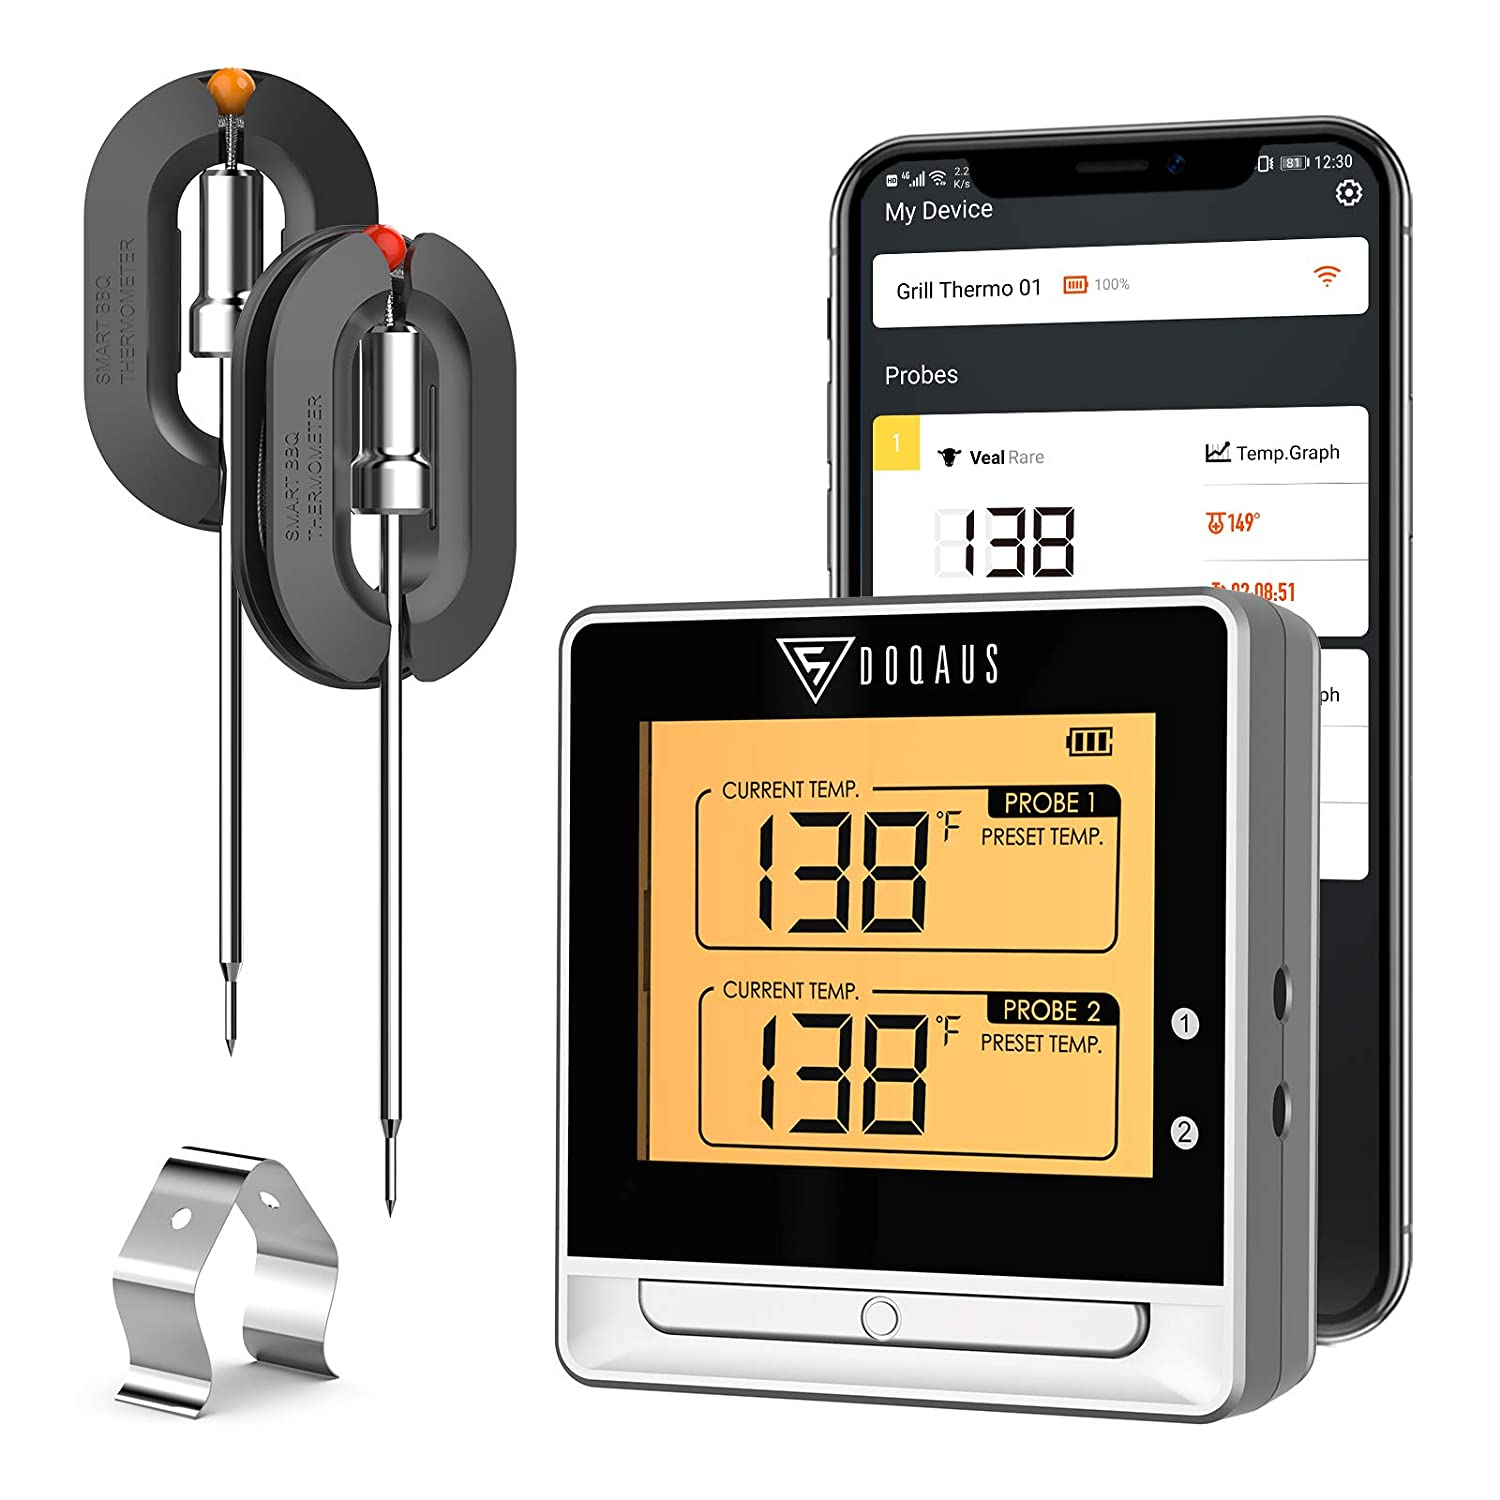 DOQAUS Bluetooth Meat Thermometer for Grilling, Digital Meat Thermometer with 2 Probes, 197ft Remote Cooking Thermometer with Smart Kitchen Timer and Backlight for Smoker, Oven, Grill, BBQ